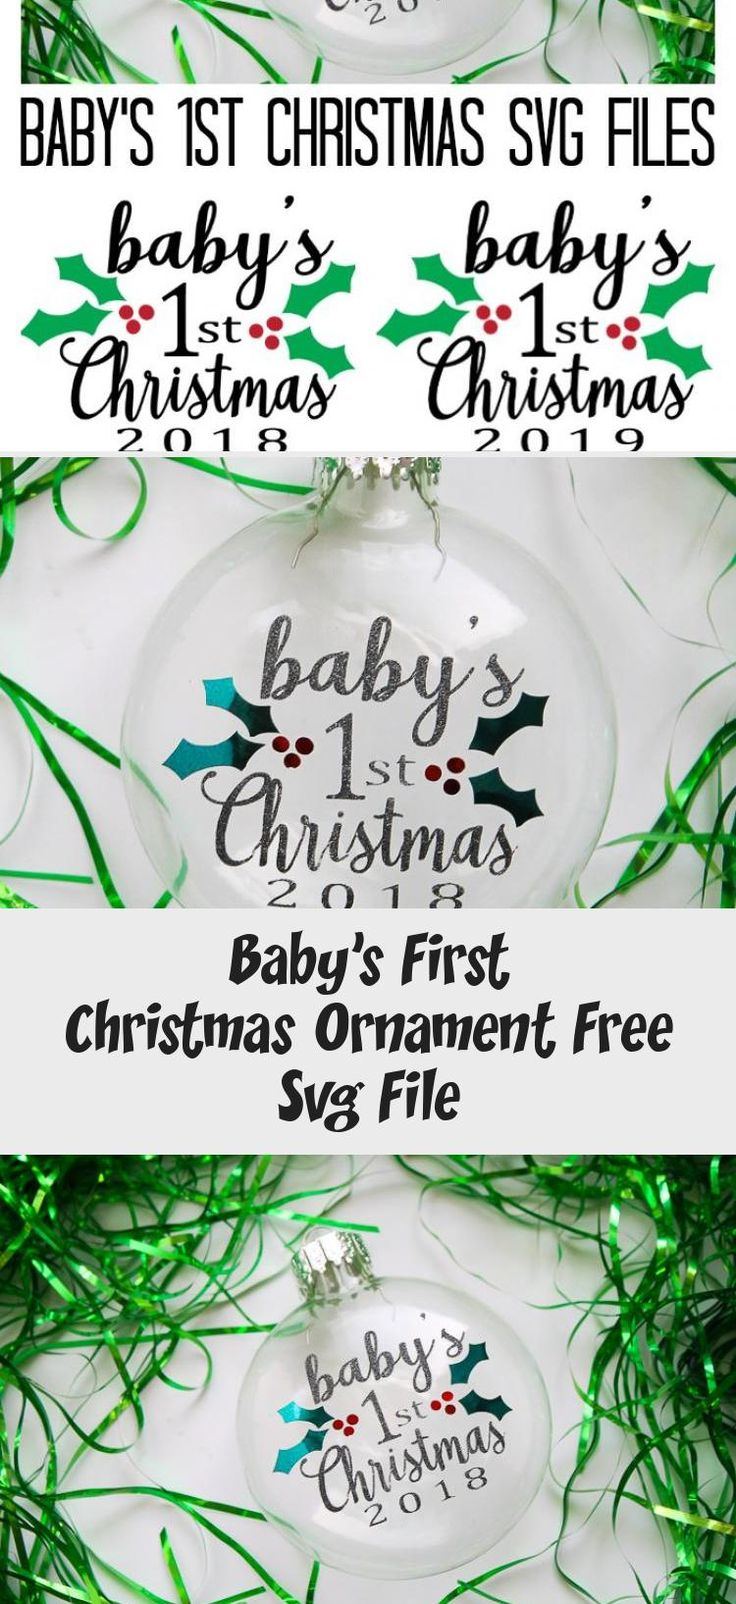 Baby's First Christmas Ornament Free Svg File İdeas in